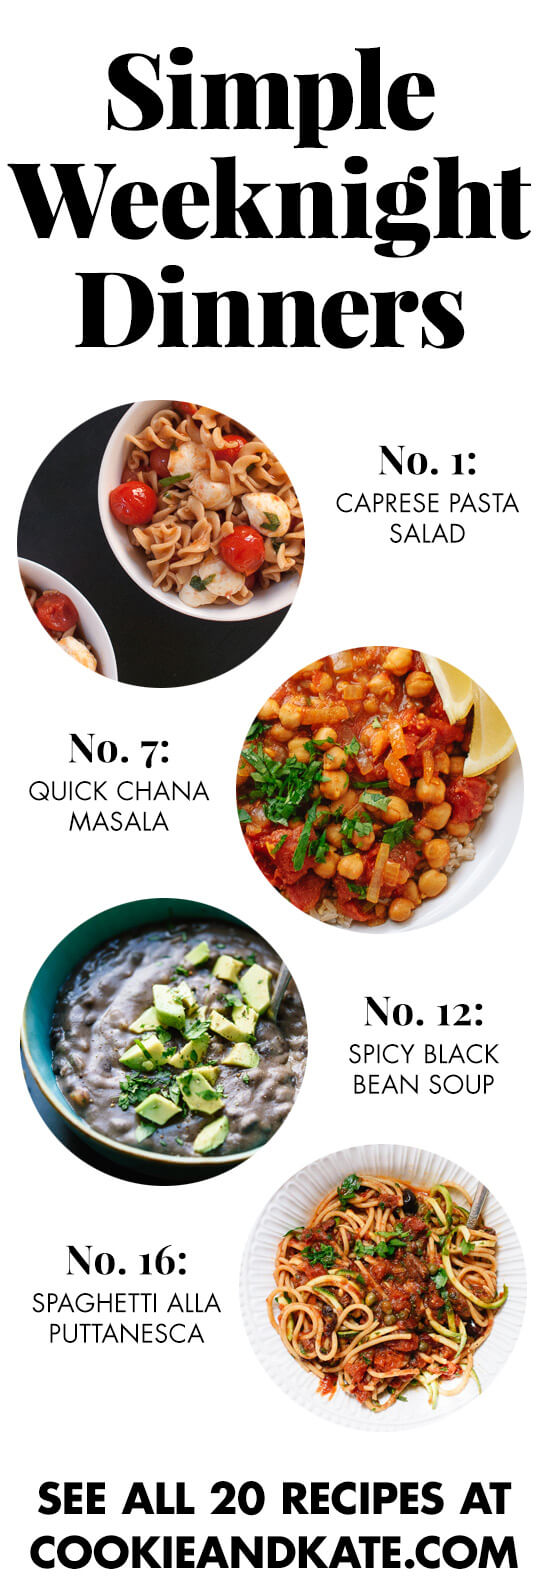 20 easy and healthy dinner recipes for busy weeknights! Find them at cookieandkate.com